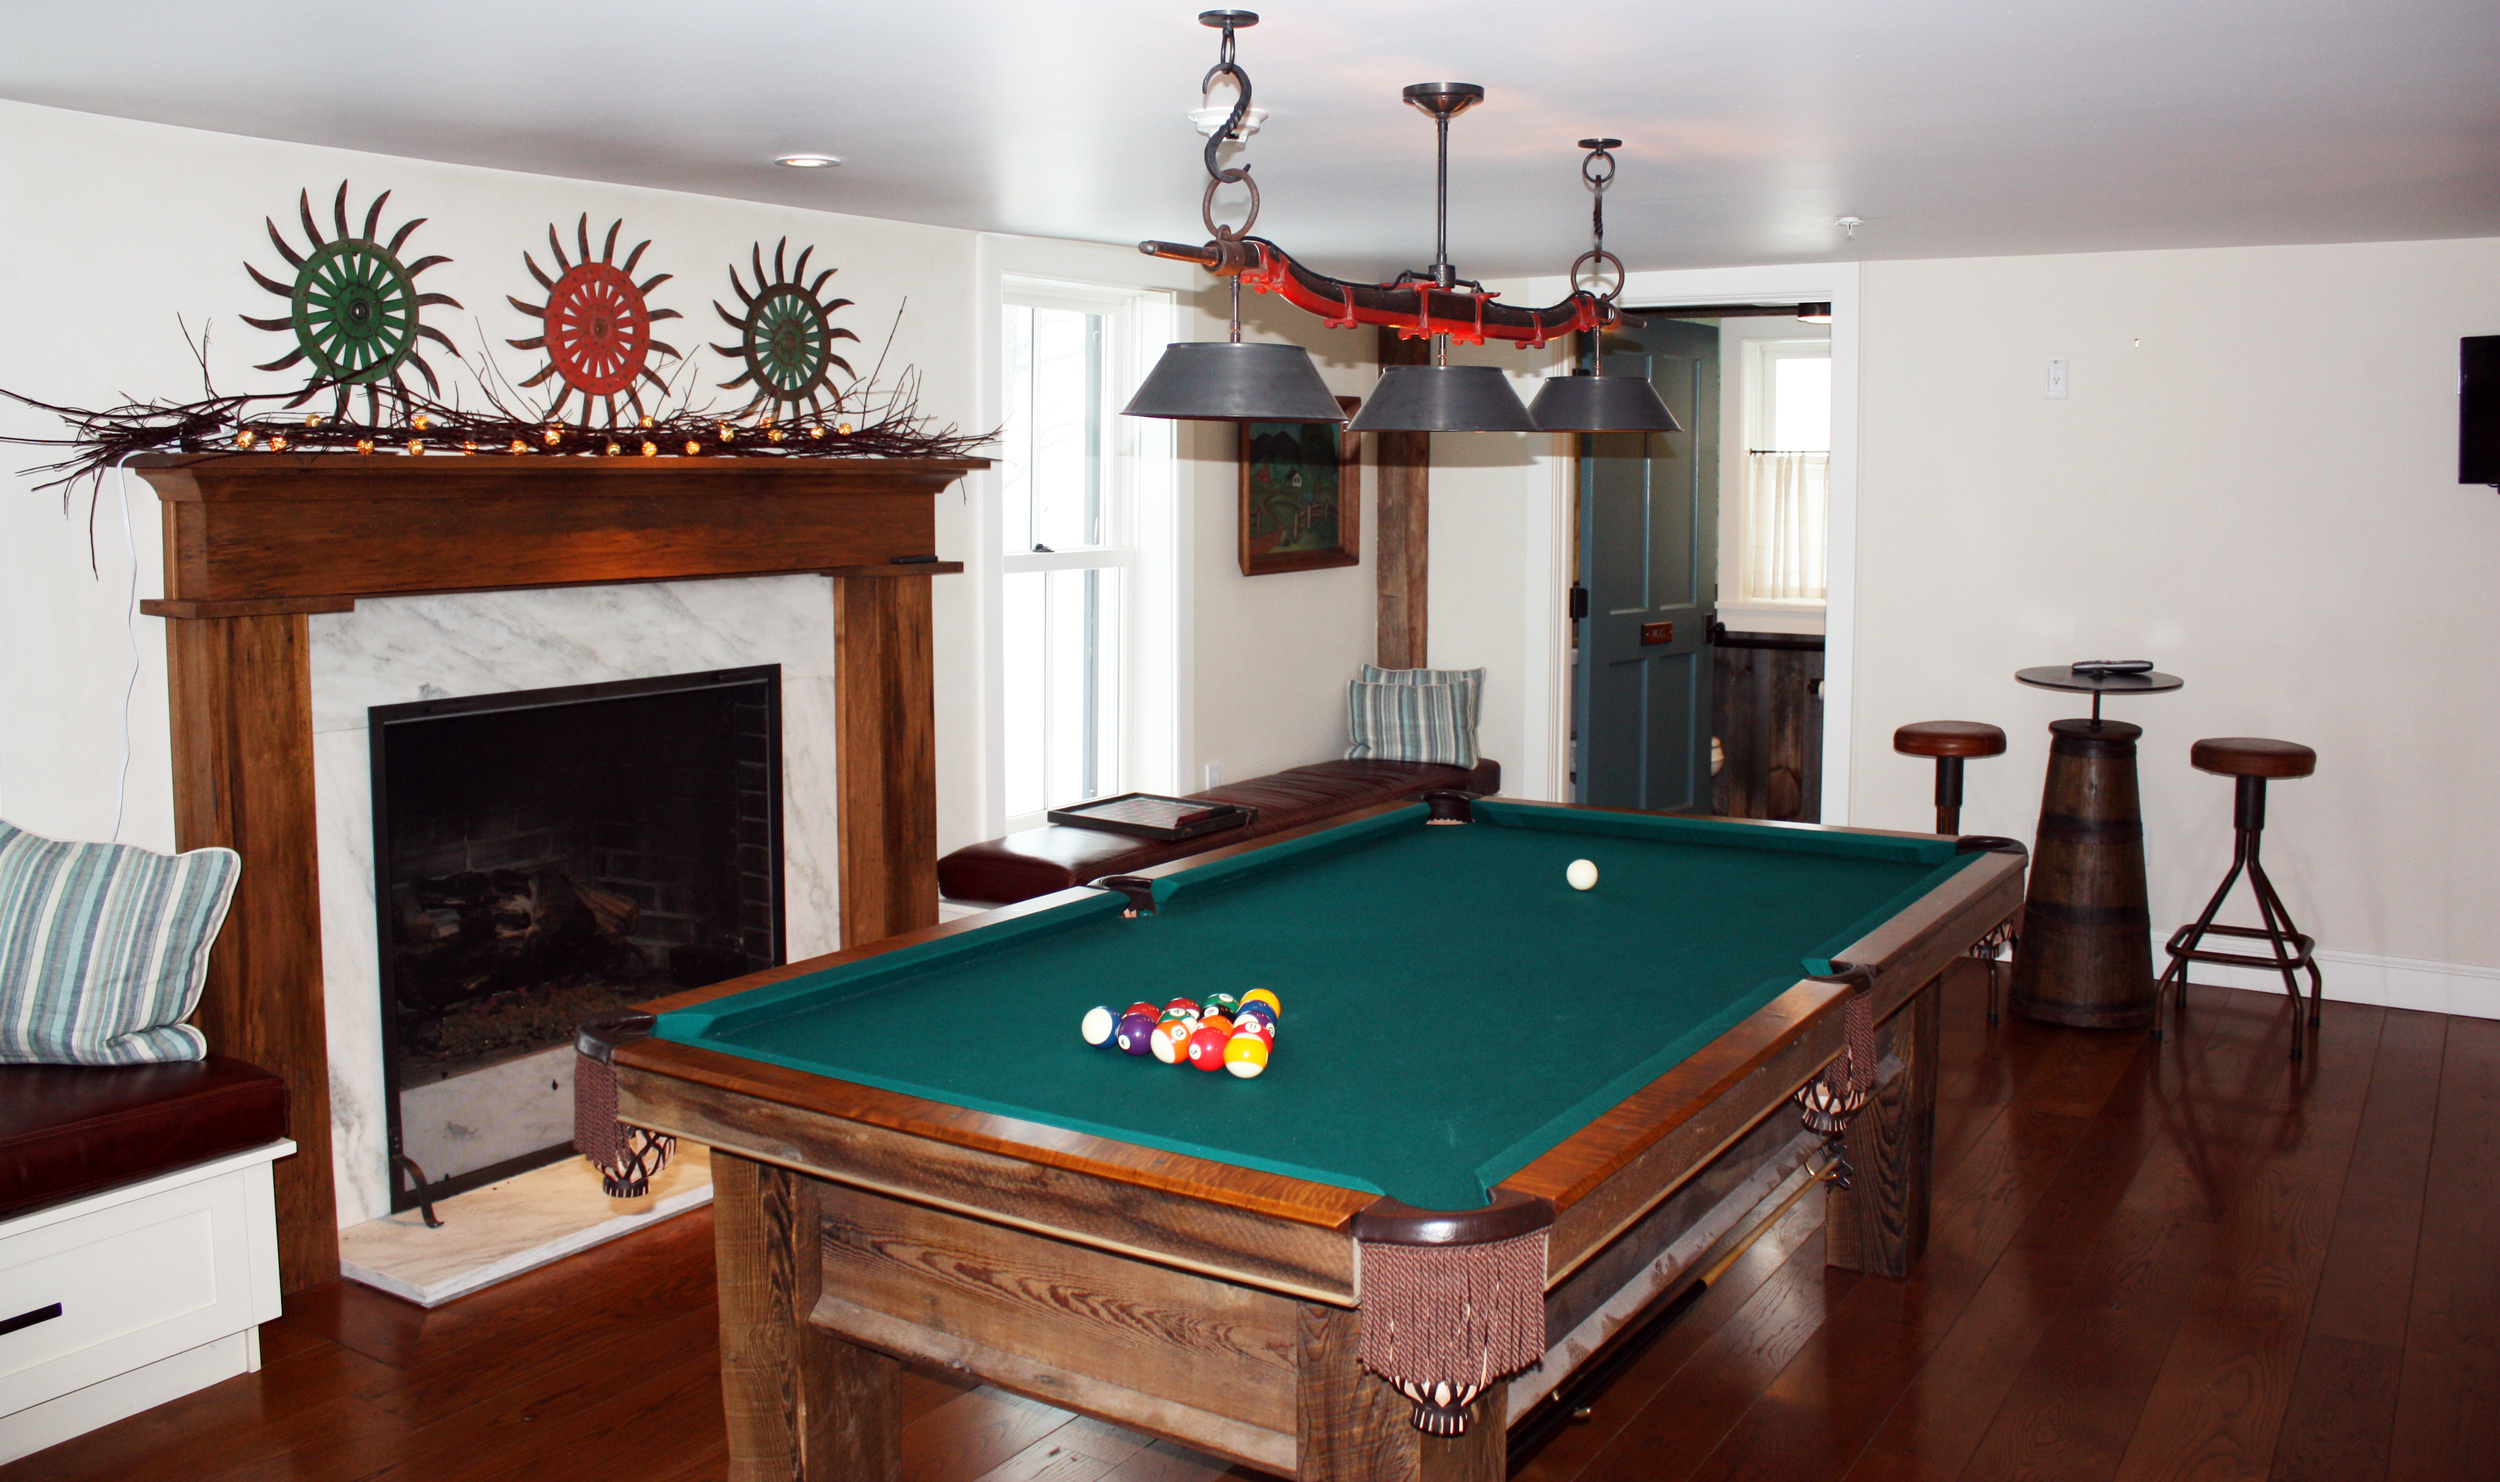 Pool Table Living Room Hill Farm Inn Sunderland Vermont